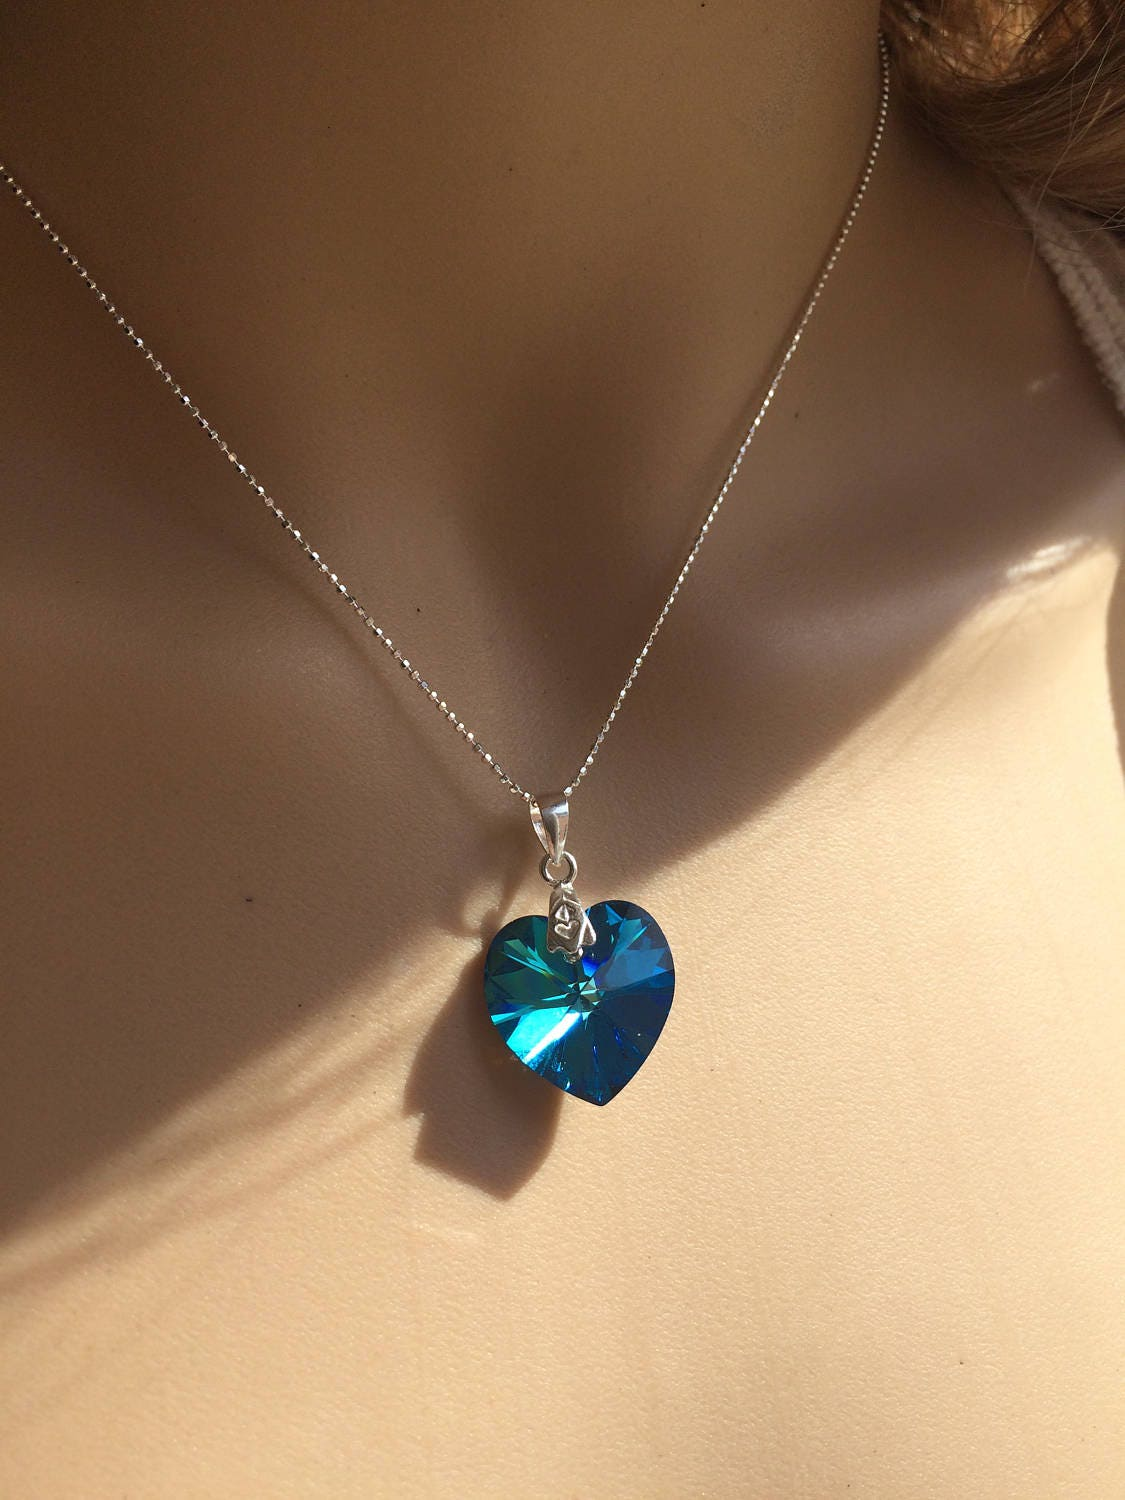 Blue swarovski crystal heart necklace sterling silver swarovski heart pendant necklace peacock blue mothers day gift swarovski jewelry gallery photo gallery photo aloadofball Images